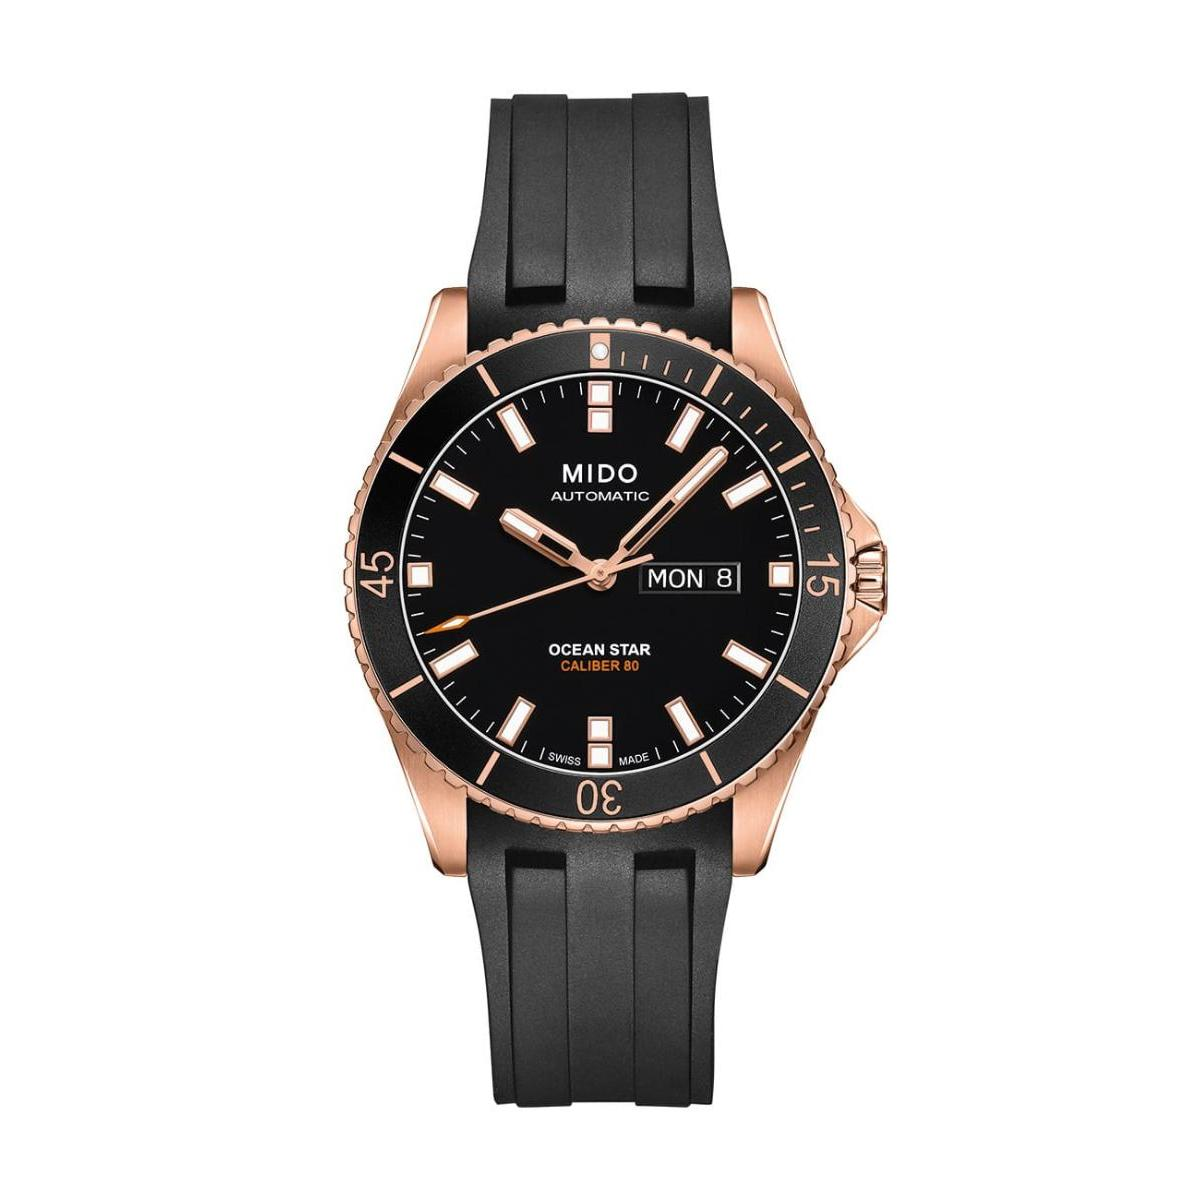 Mido  Mido Sporty Ocean Star Captain V Men Stainless steel Round Black Dial Automatic Watch  M026.430.37.051.00